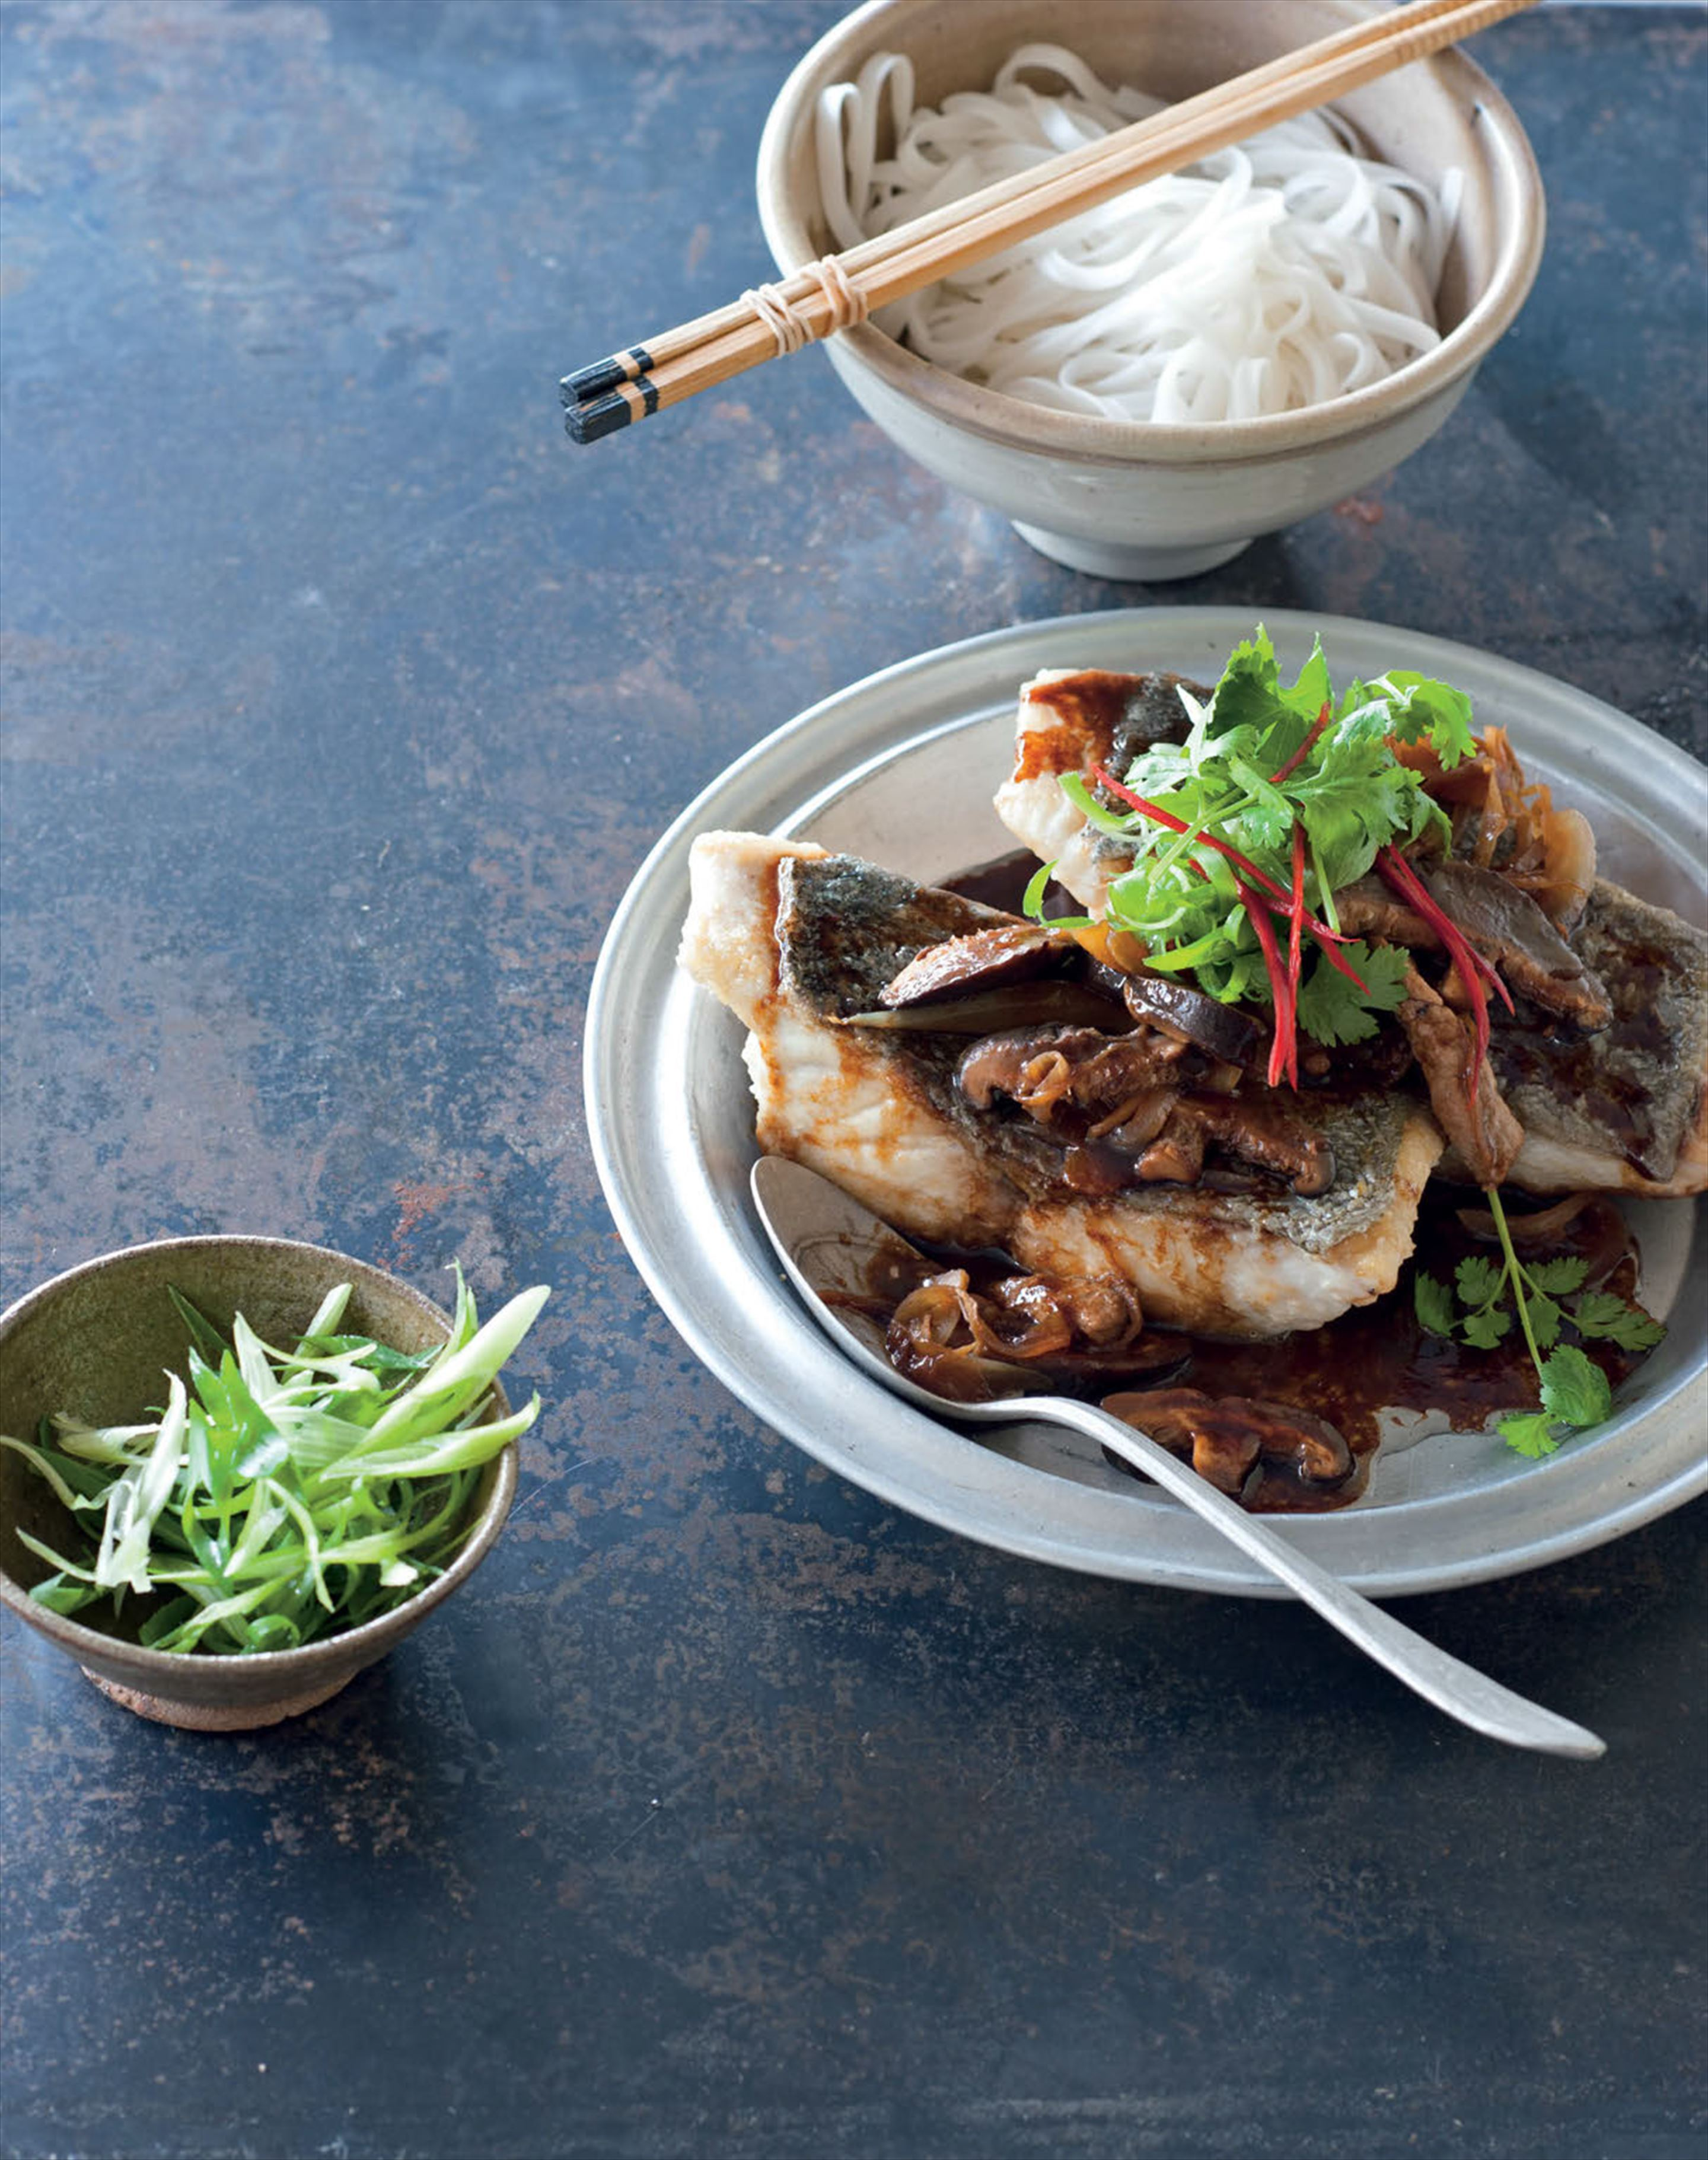 Fish with pork and ginger